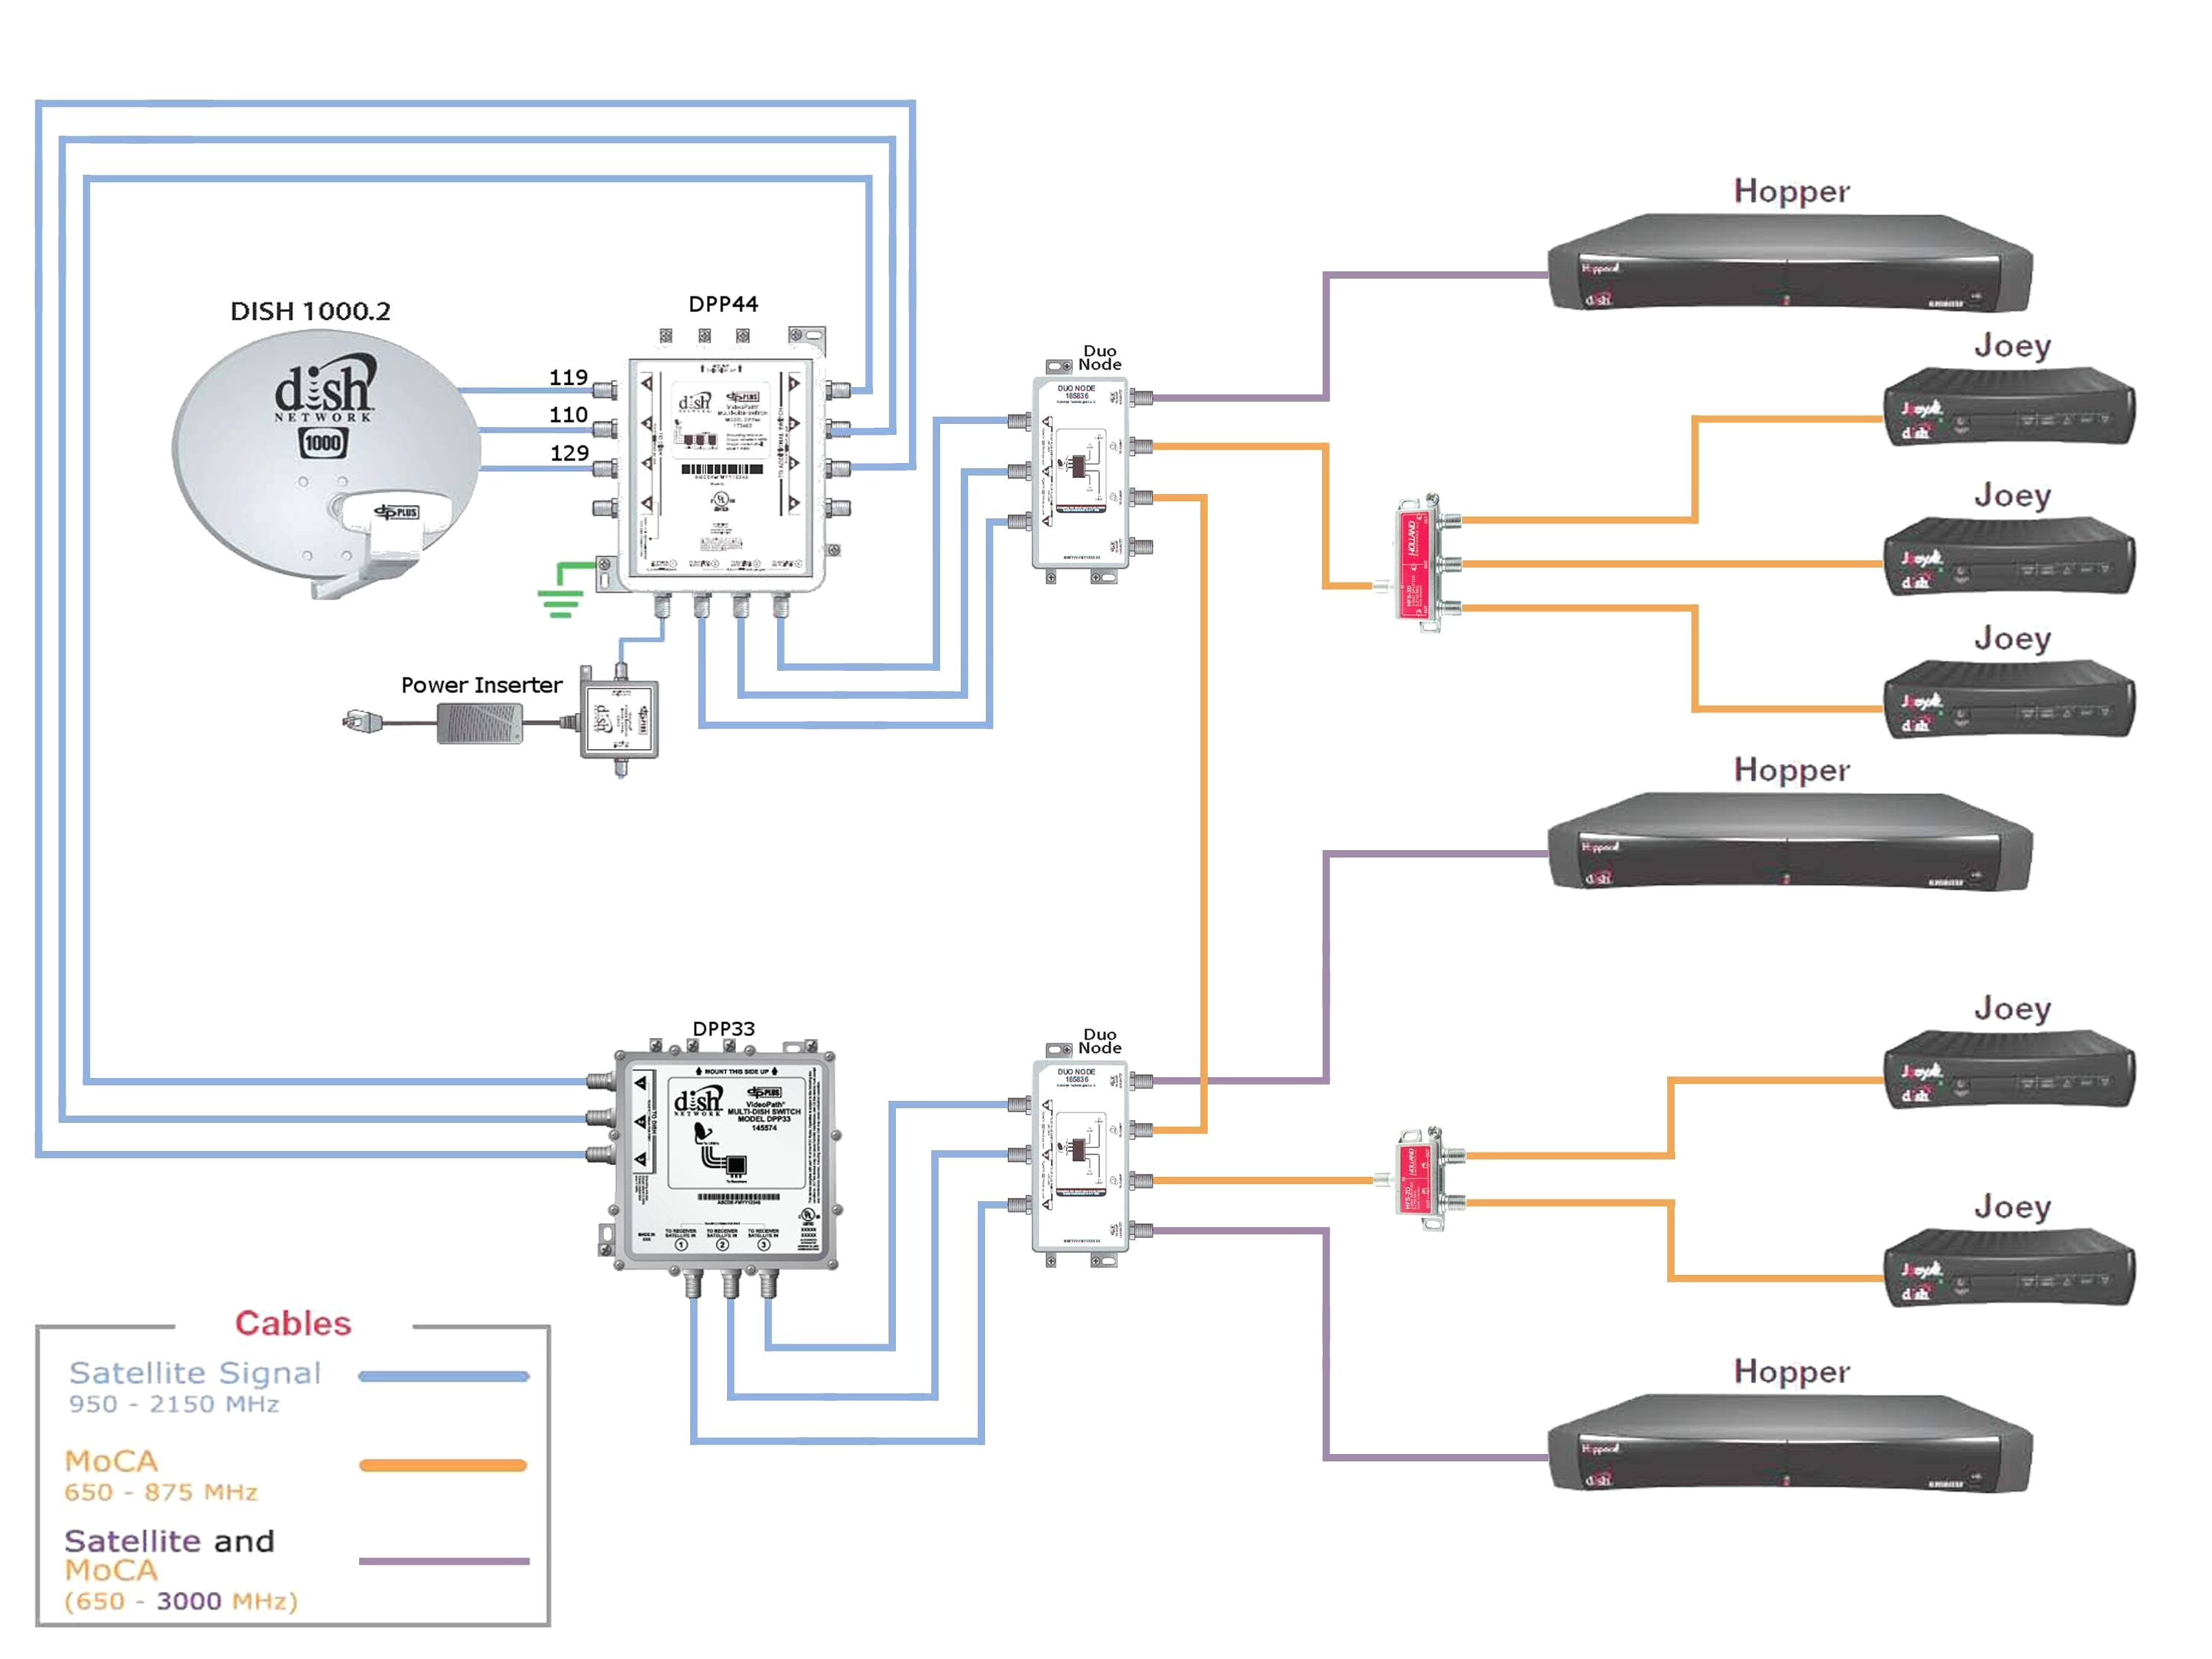 wiring diagram for dish network satellite Download-Satellite Dish Wiring Diagram Jpg Amazing Network In Random 2 Satellite Dish Wiring Diagram 6-g